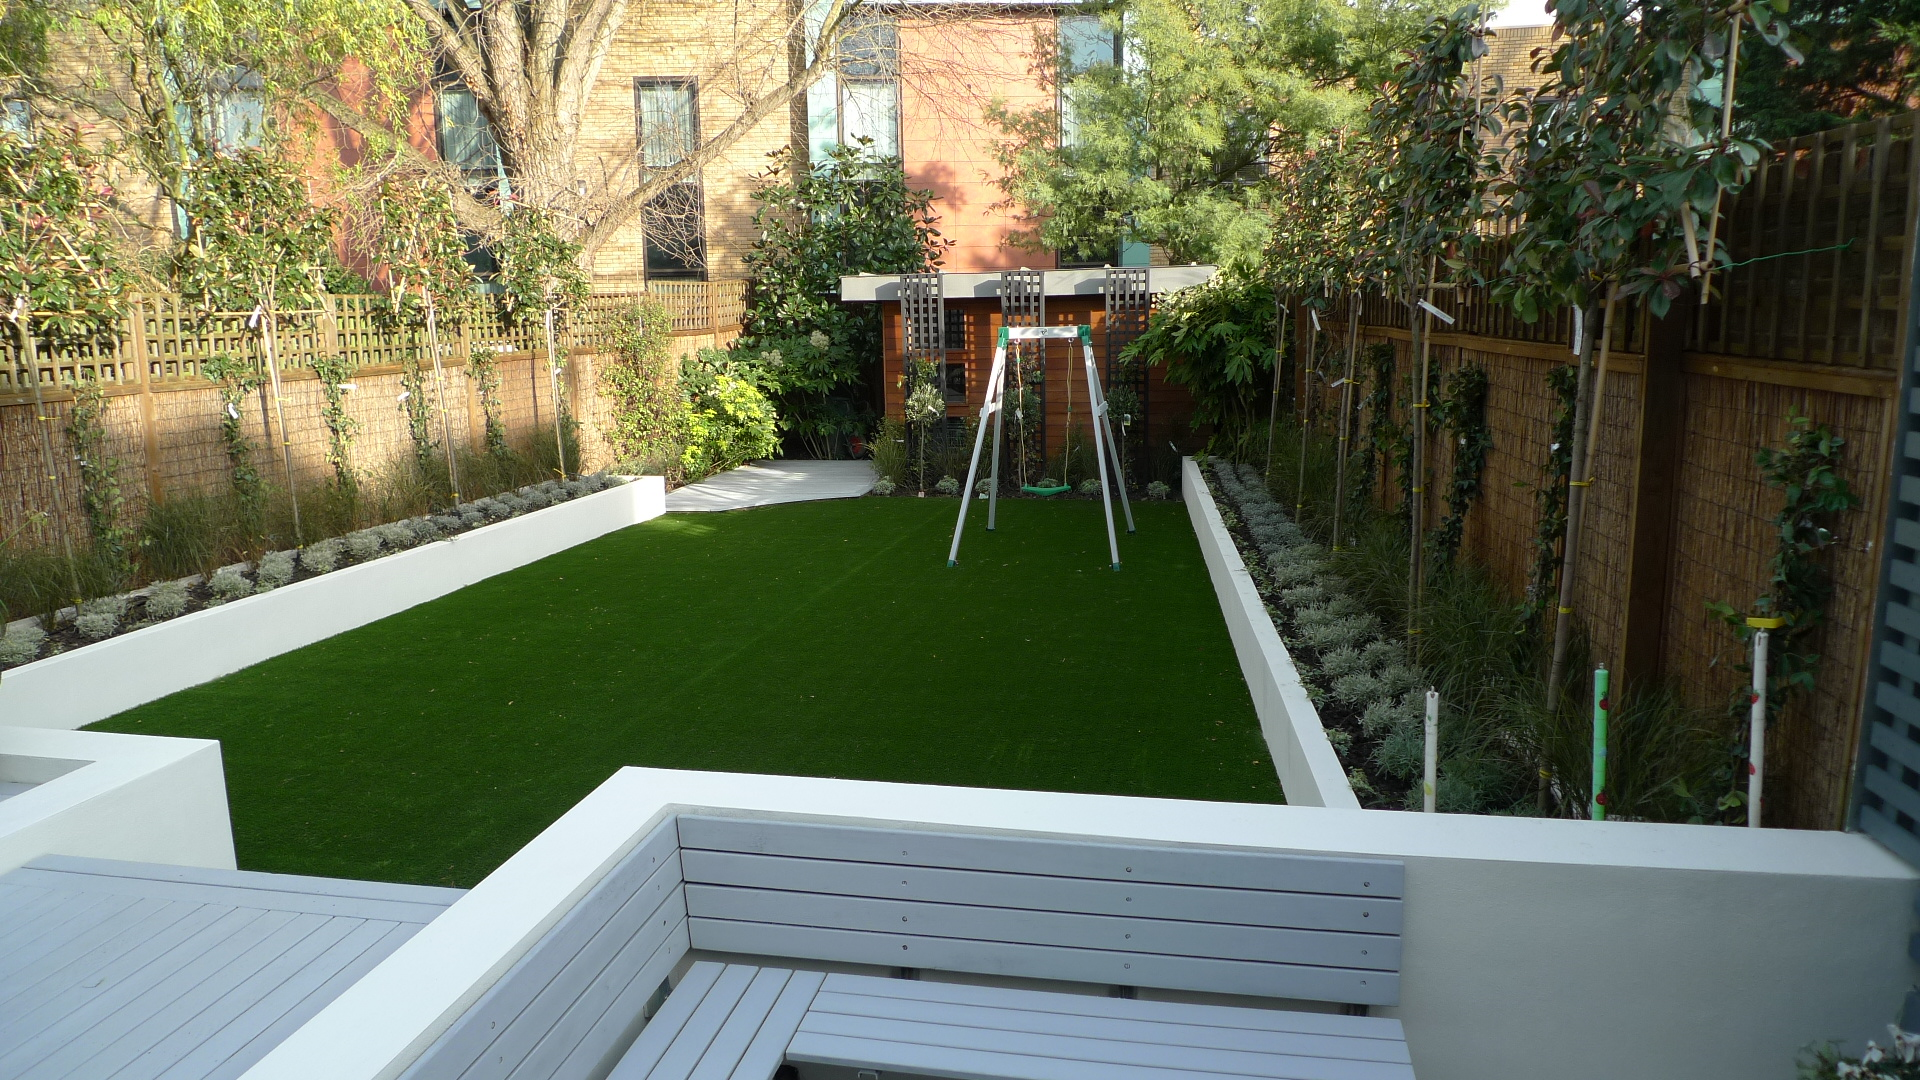 Modern garden design ideas london london garden design for Garden ideas and designs